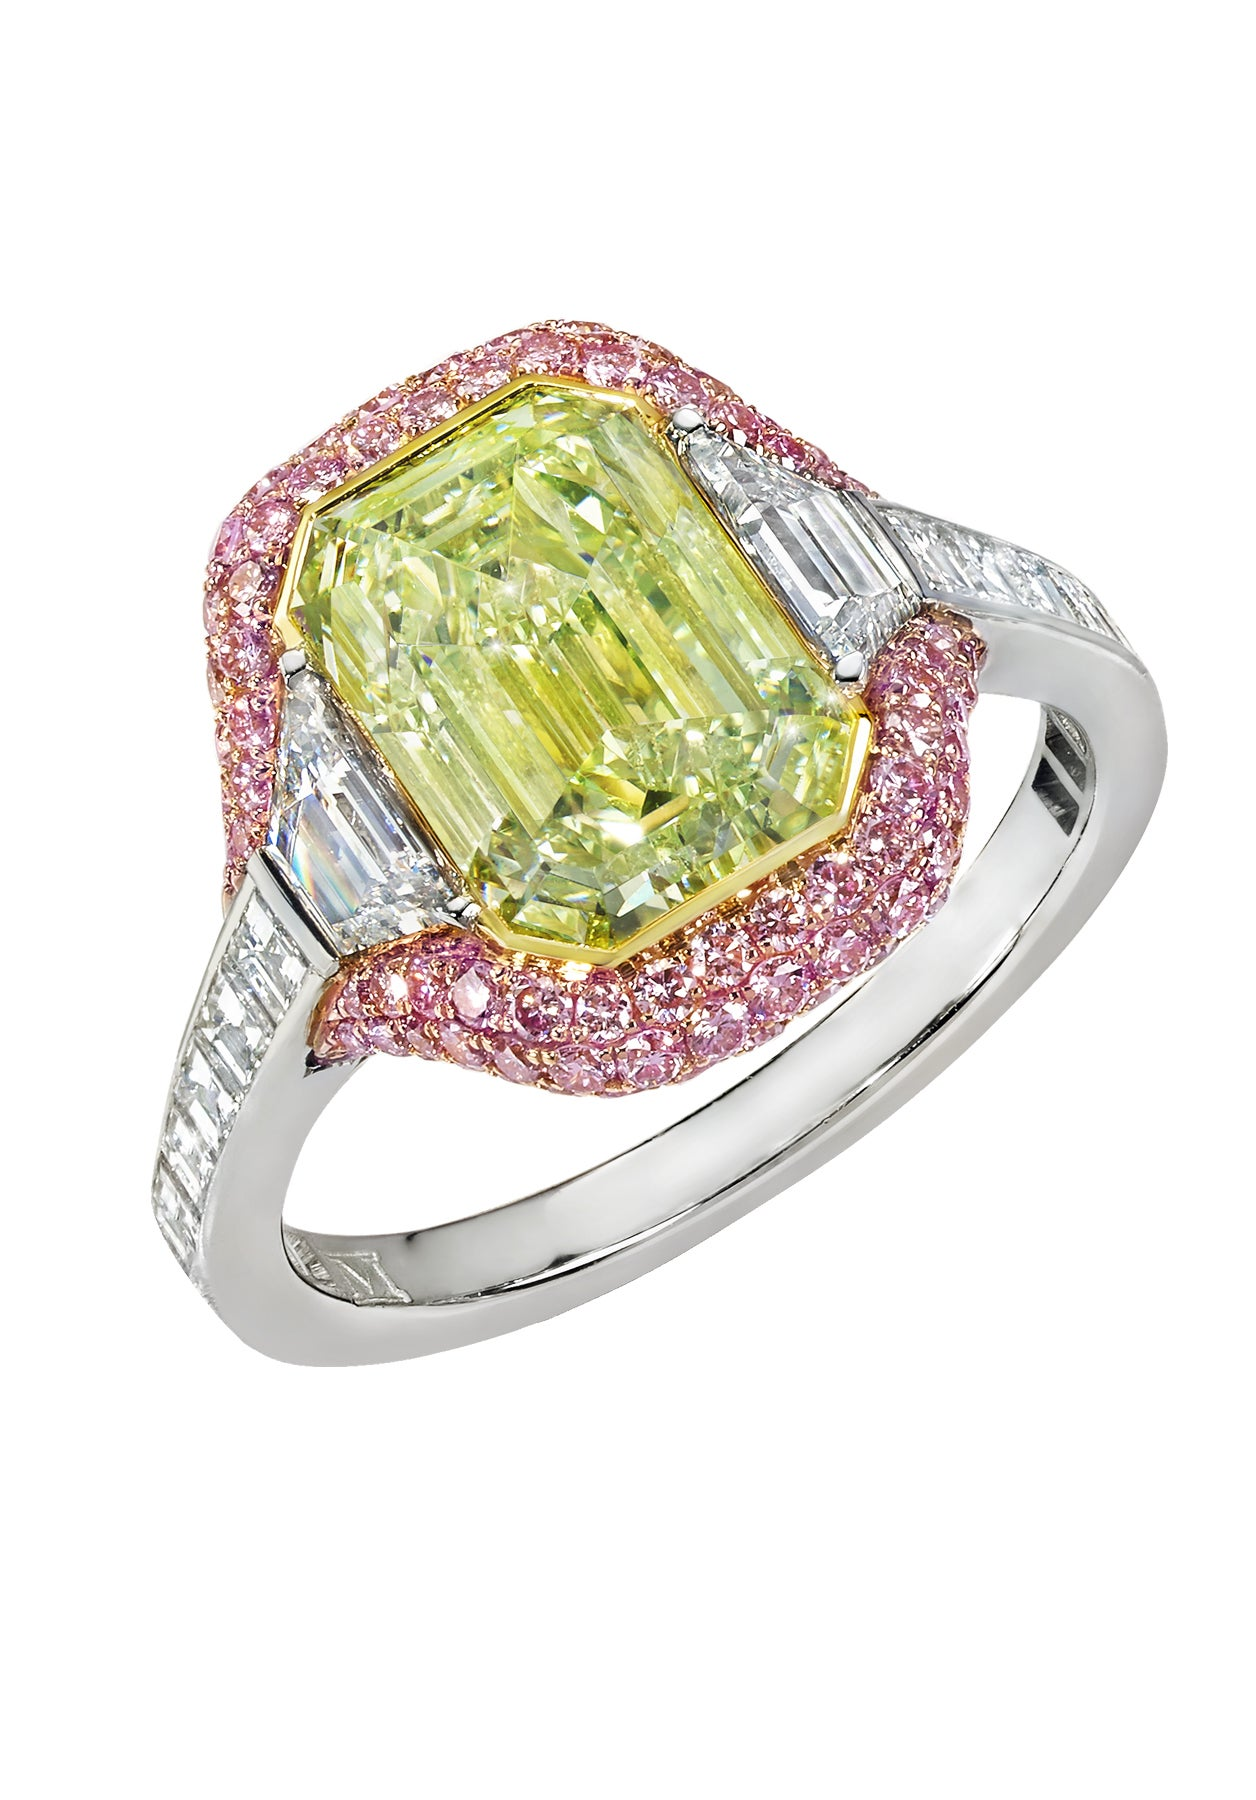 Five Engagement Rings To Buy For Valentine S Day Elite Traveler